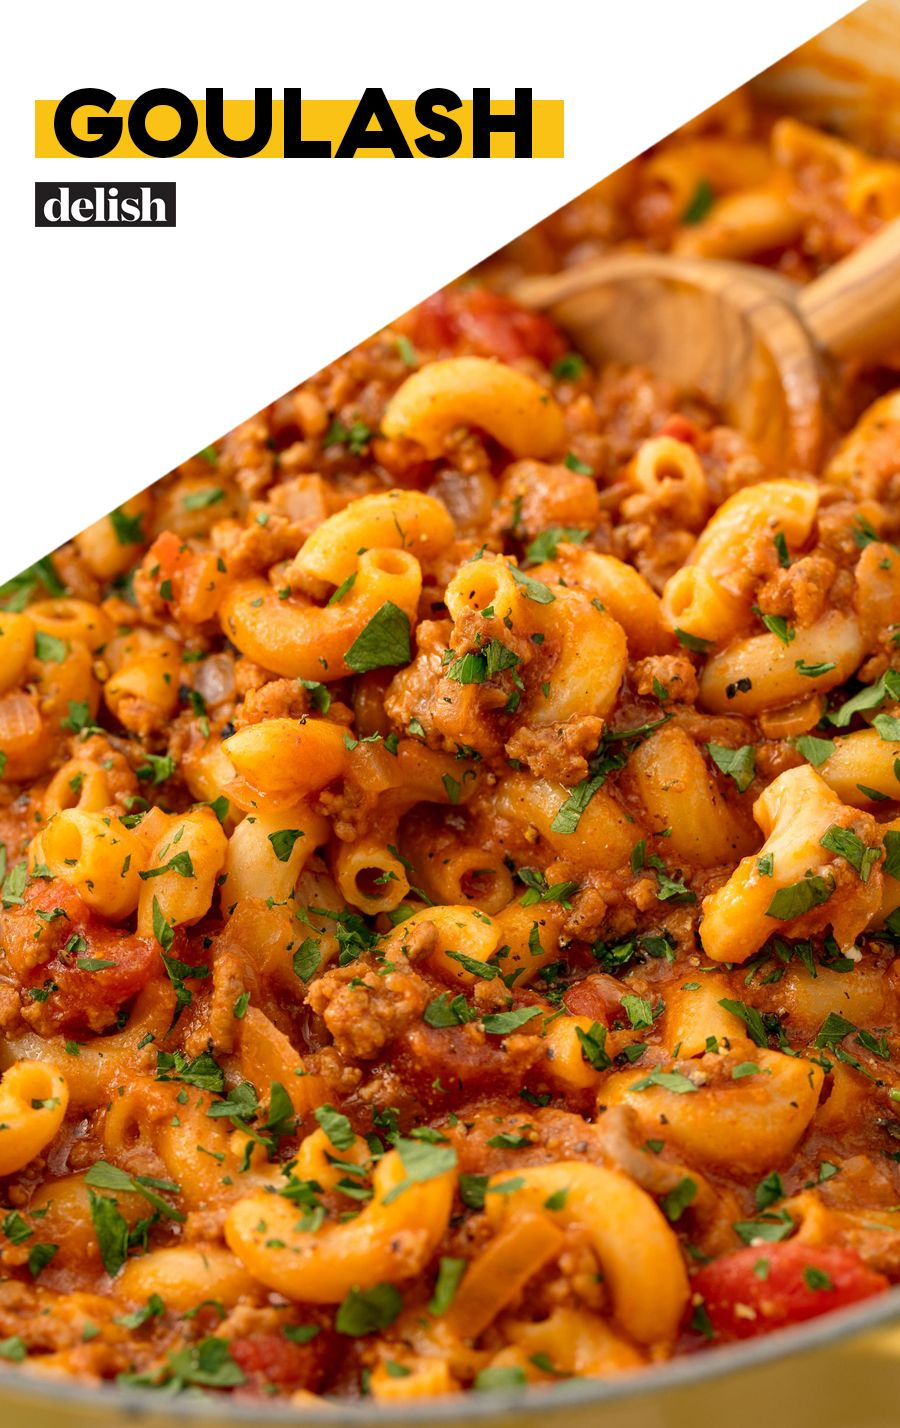 Goulash Recipe Pasta Dishes Goulash Recipes Ground Beef Recipes